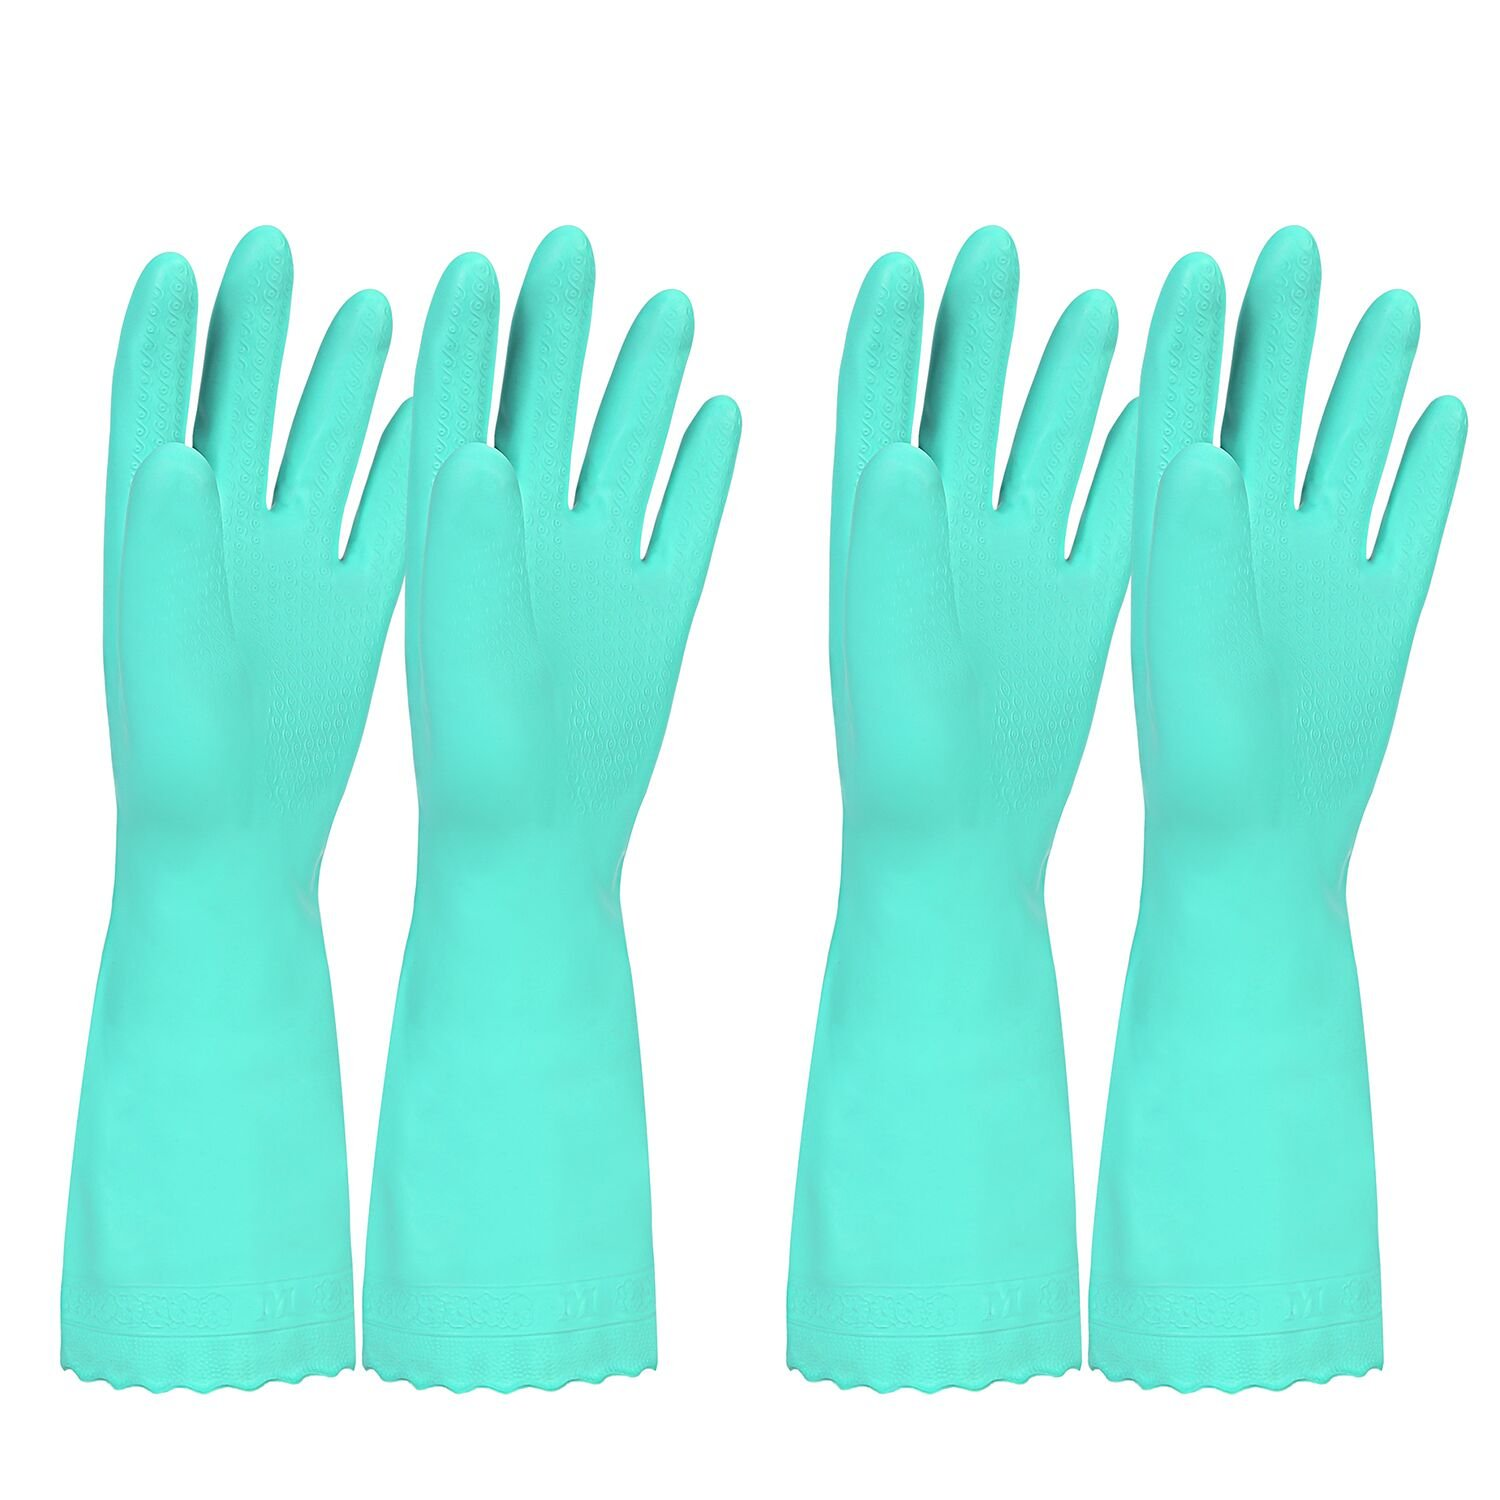 Elgood Household Gloves,Latex Free Vinyl Cotton Lining Non- Slip Swirl Grip Gloves for Kithen Dishwashing Laundry Cleaning 2 Pairs (L, blue+blue)